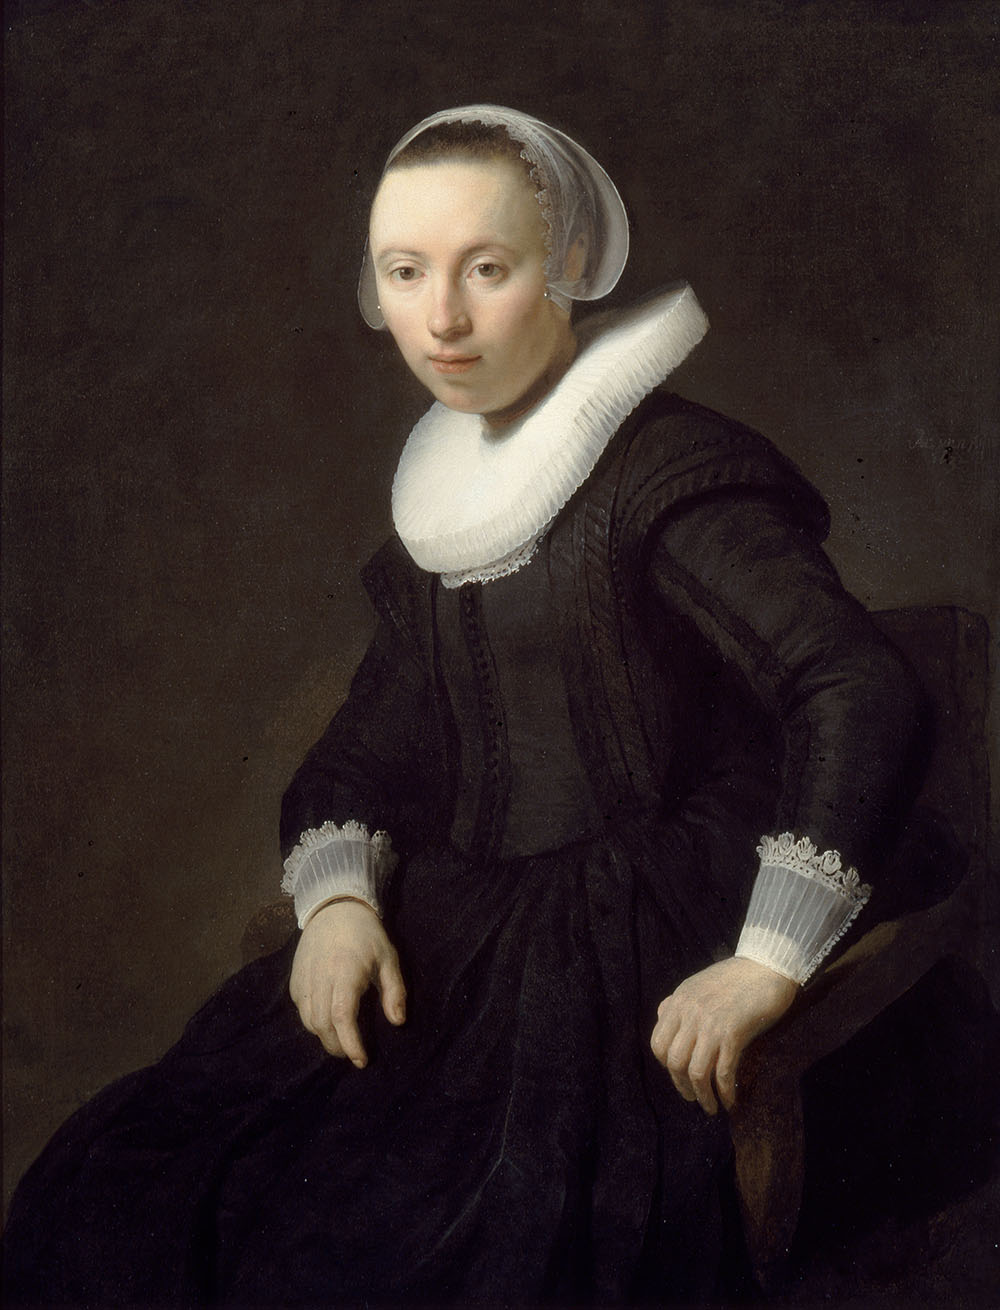 filerembrandt portrait of a woman seated viennajpg